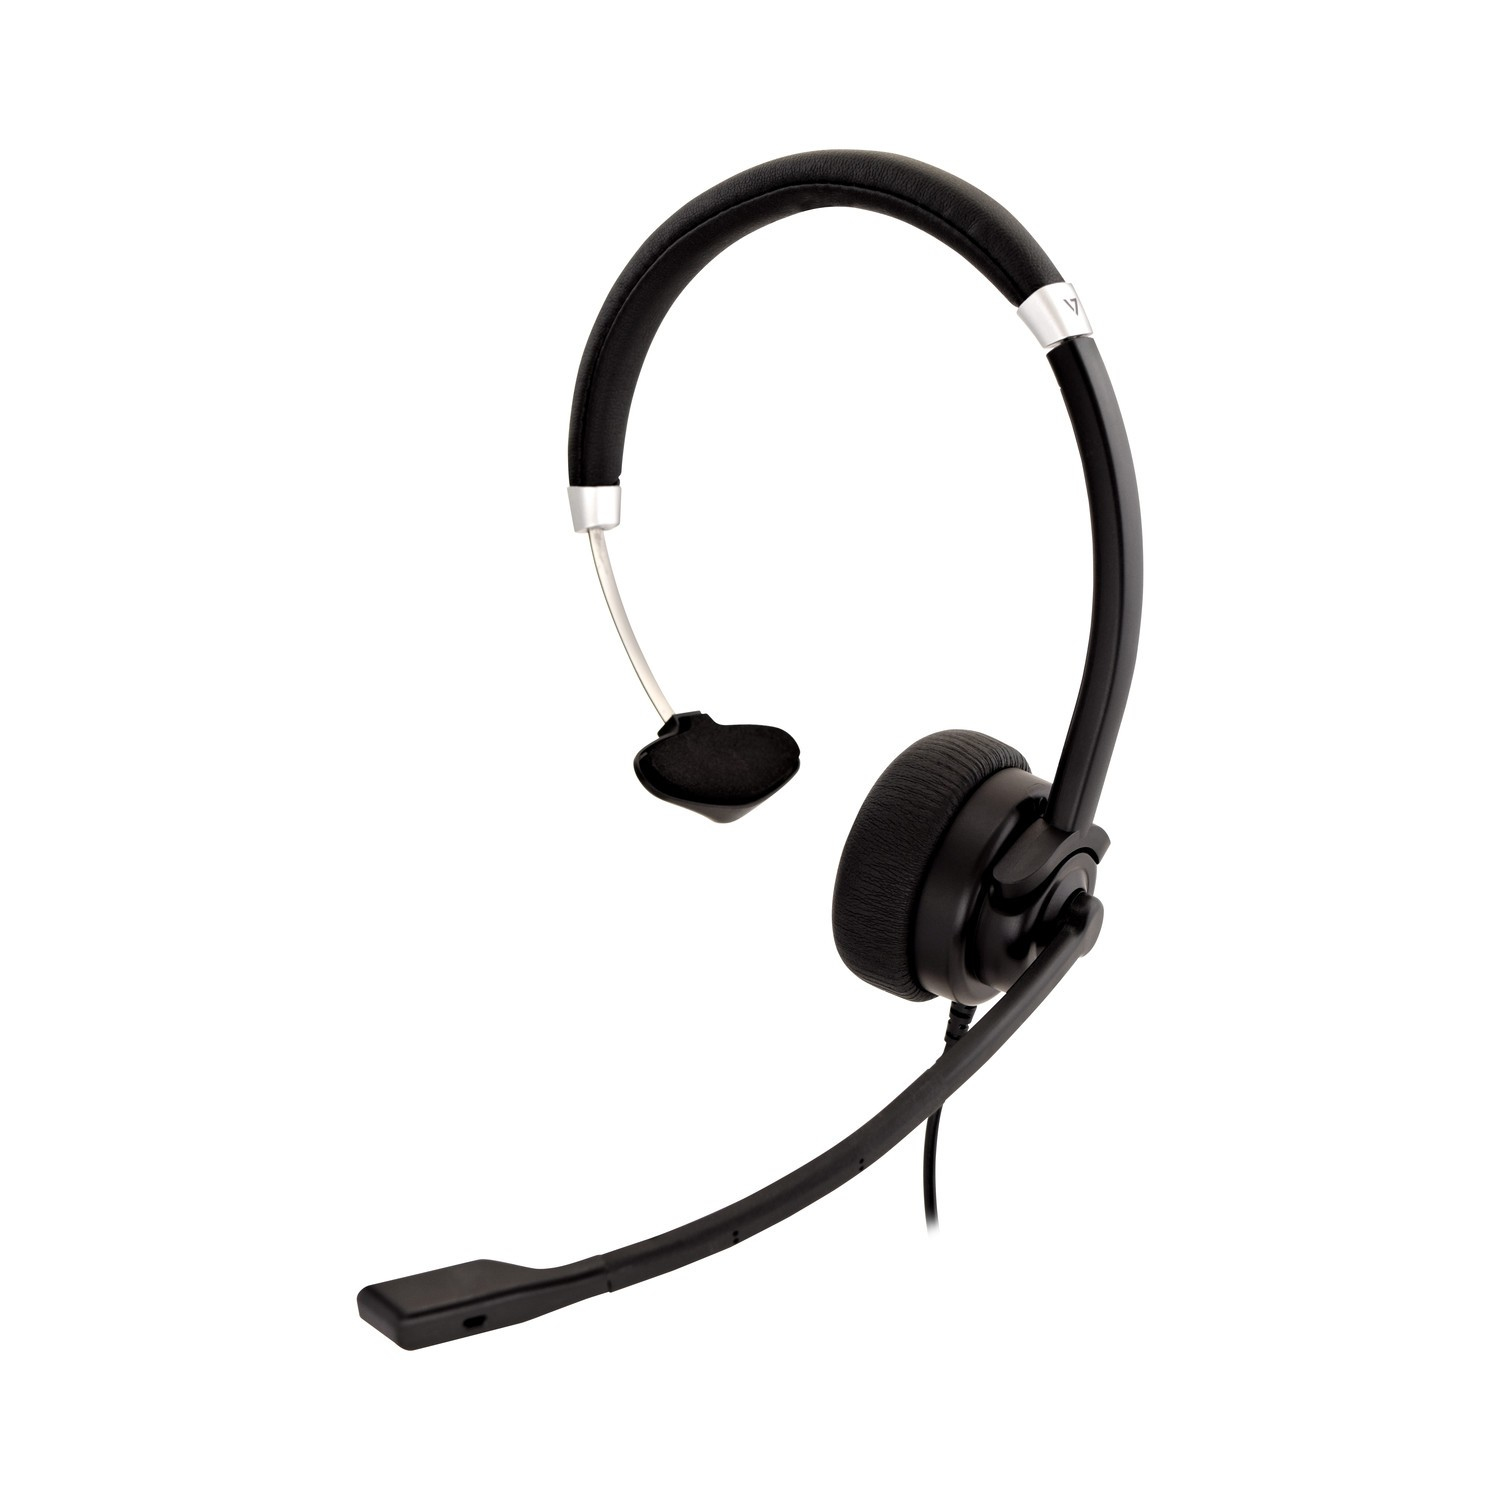 V7 Deluxe Mono Headset, boom mic, Adjustable Headband for PC, Mac, Laptop Computer, Chromebook, Black, 3.5mm connector